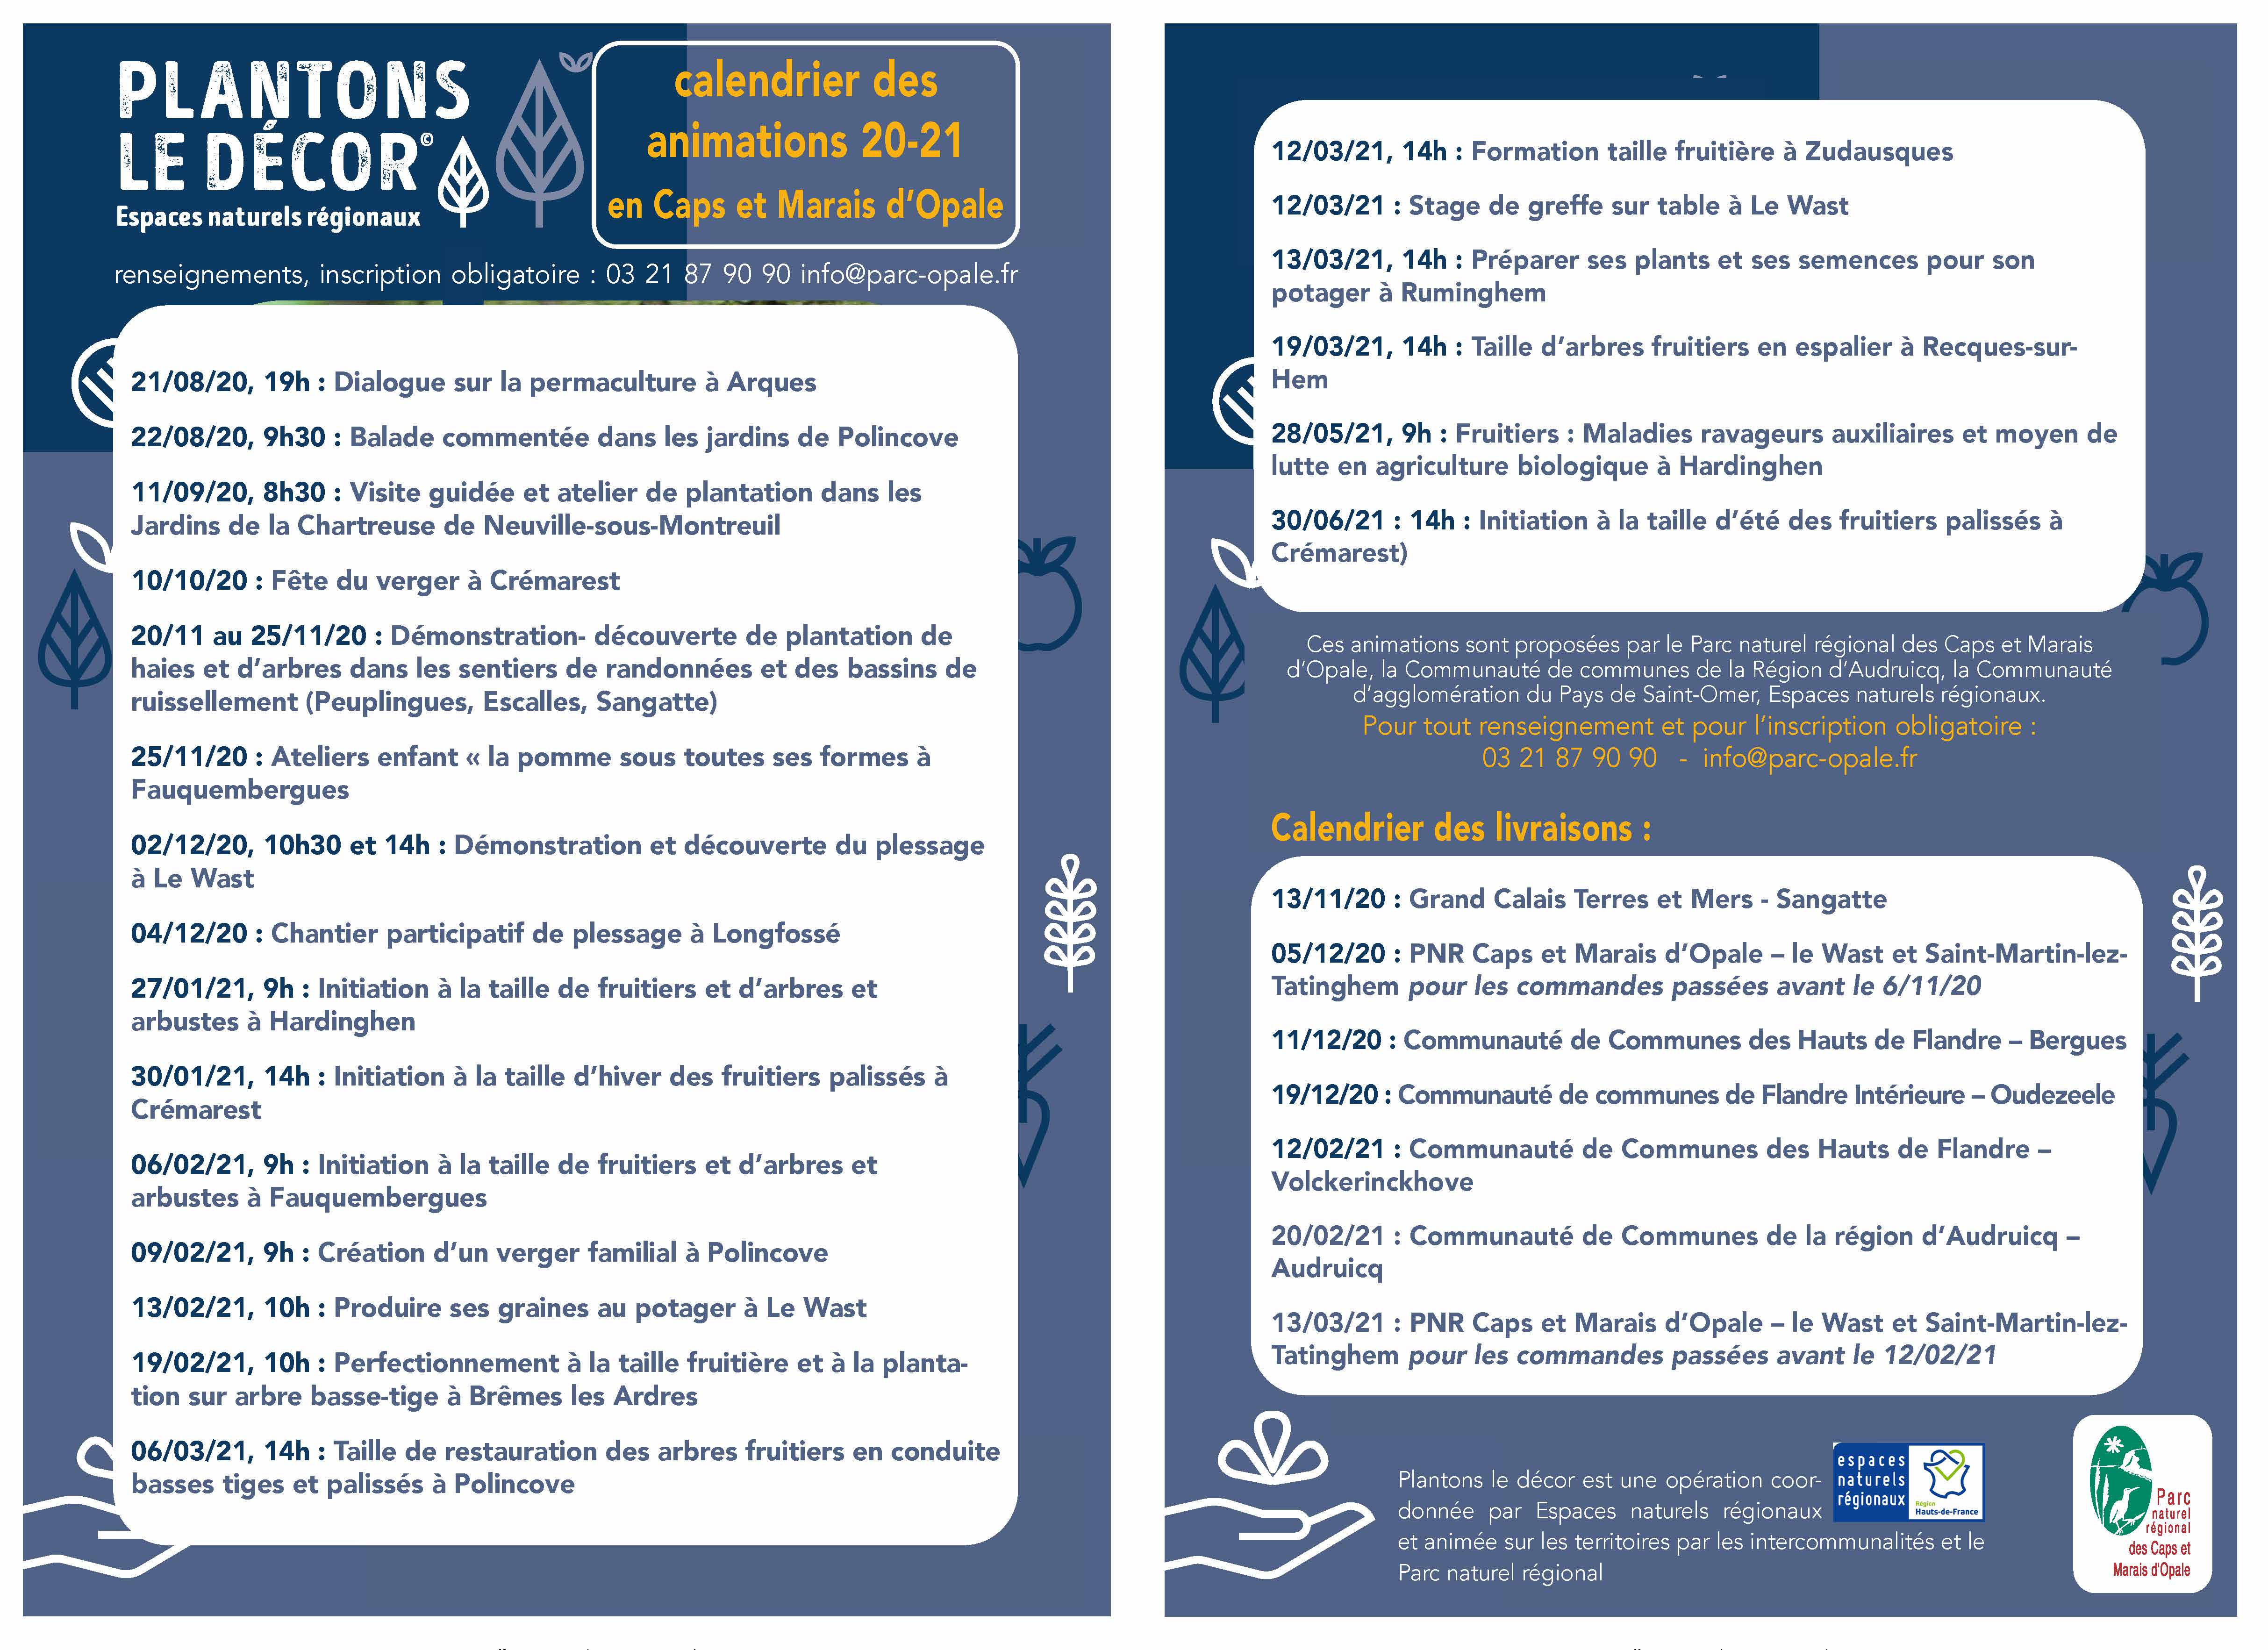 calendrier des animations PLD 20 21 A5 2 RV Page 1